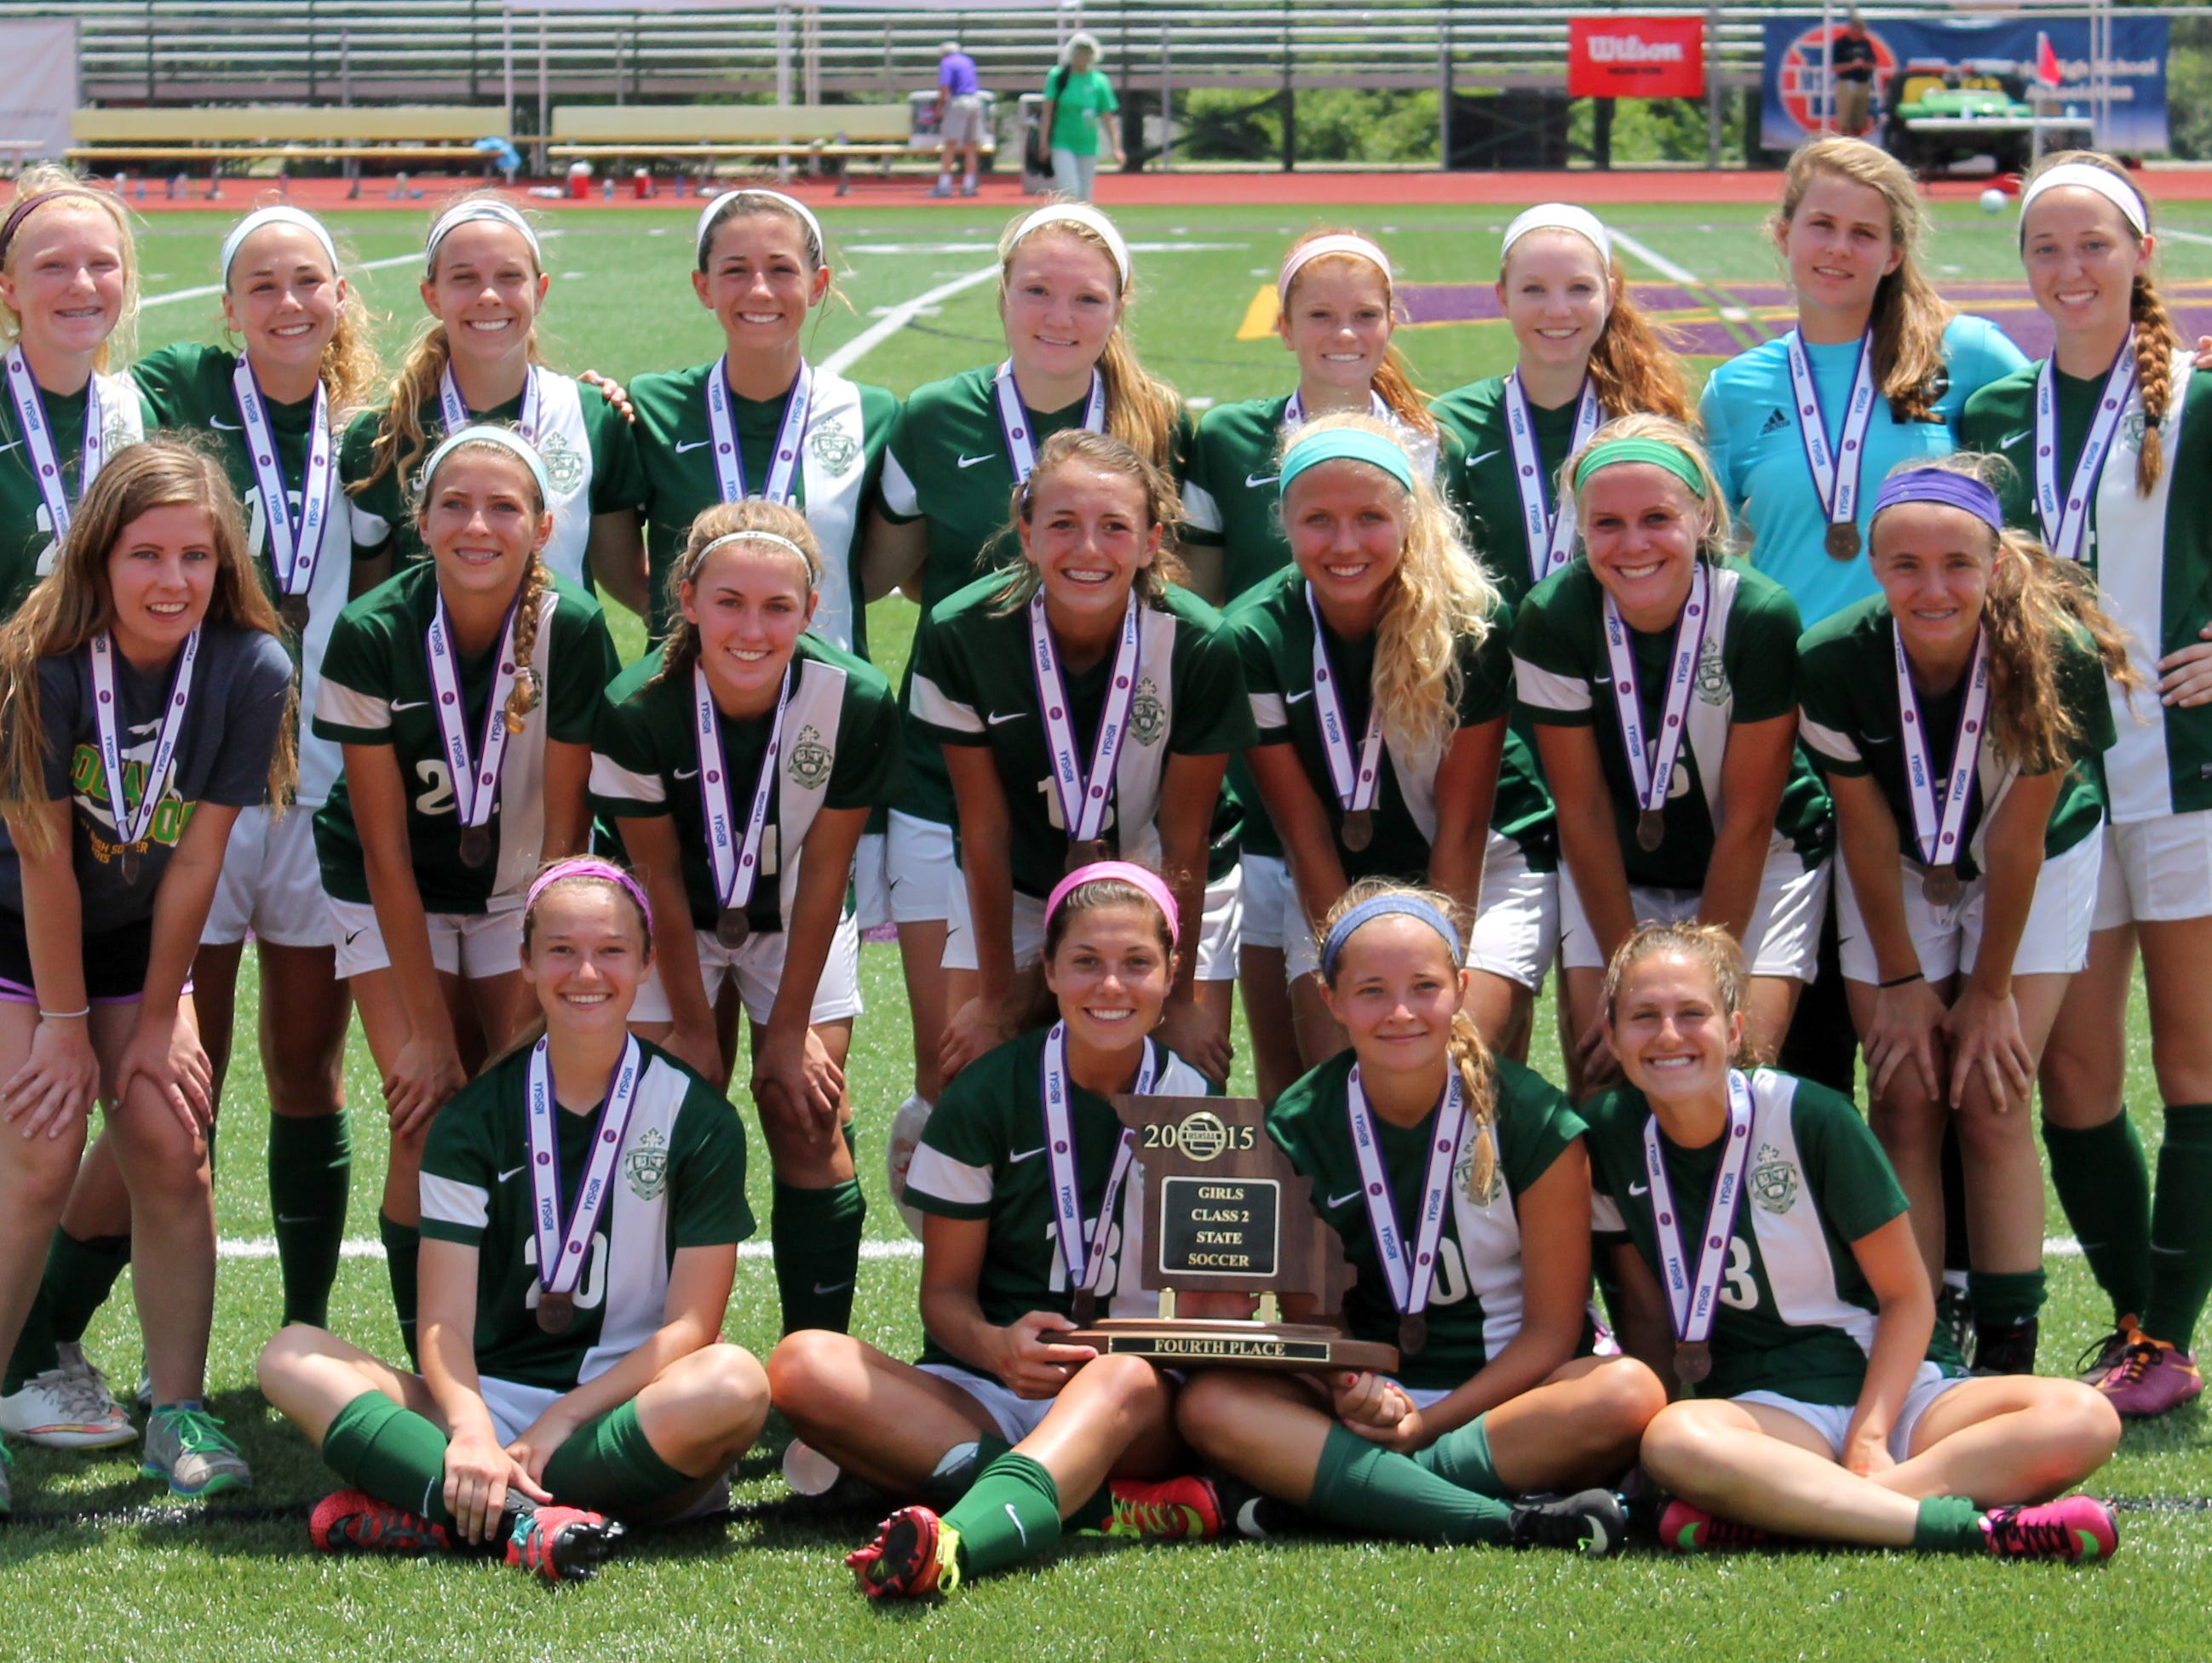 Springfield Catholic placed fourth in the 2015 Class 2 girls soccer playoffs. The 2016 Irish are ranked fourth in the first state coaches' poll of the season.